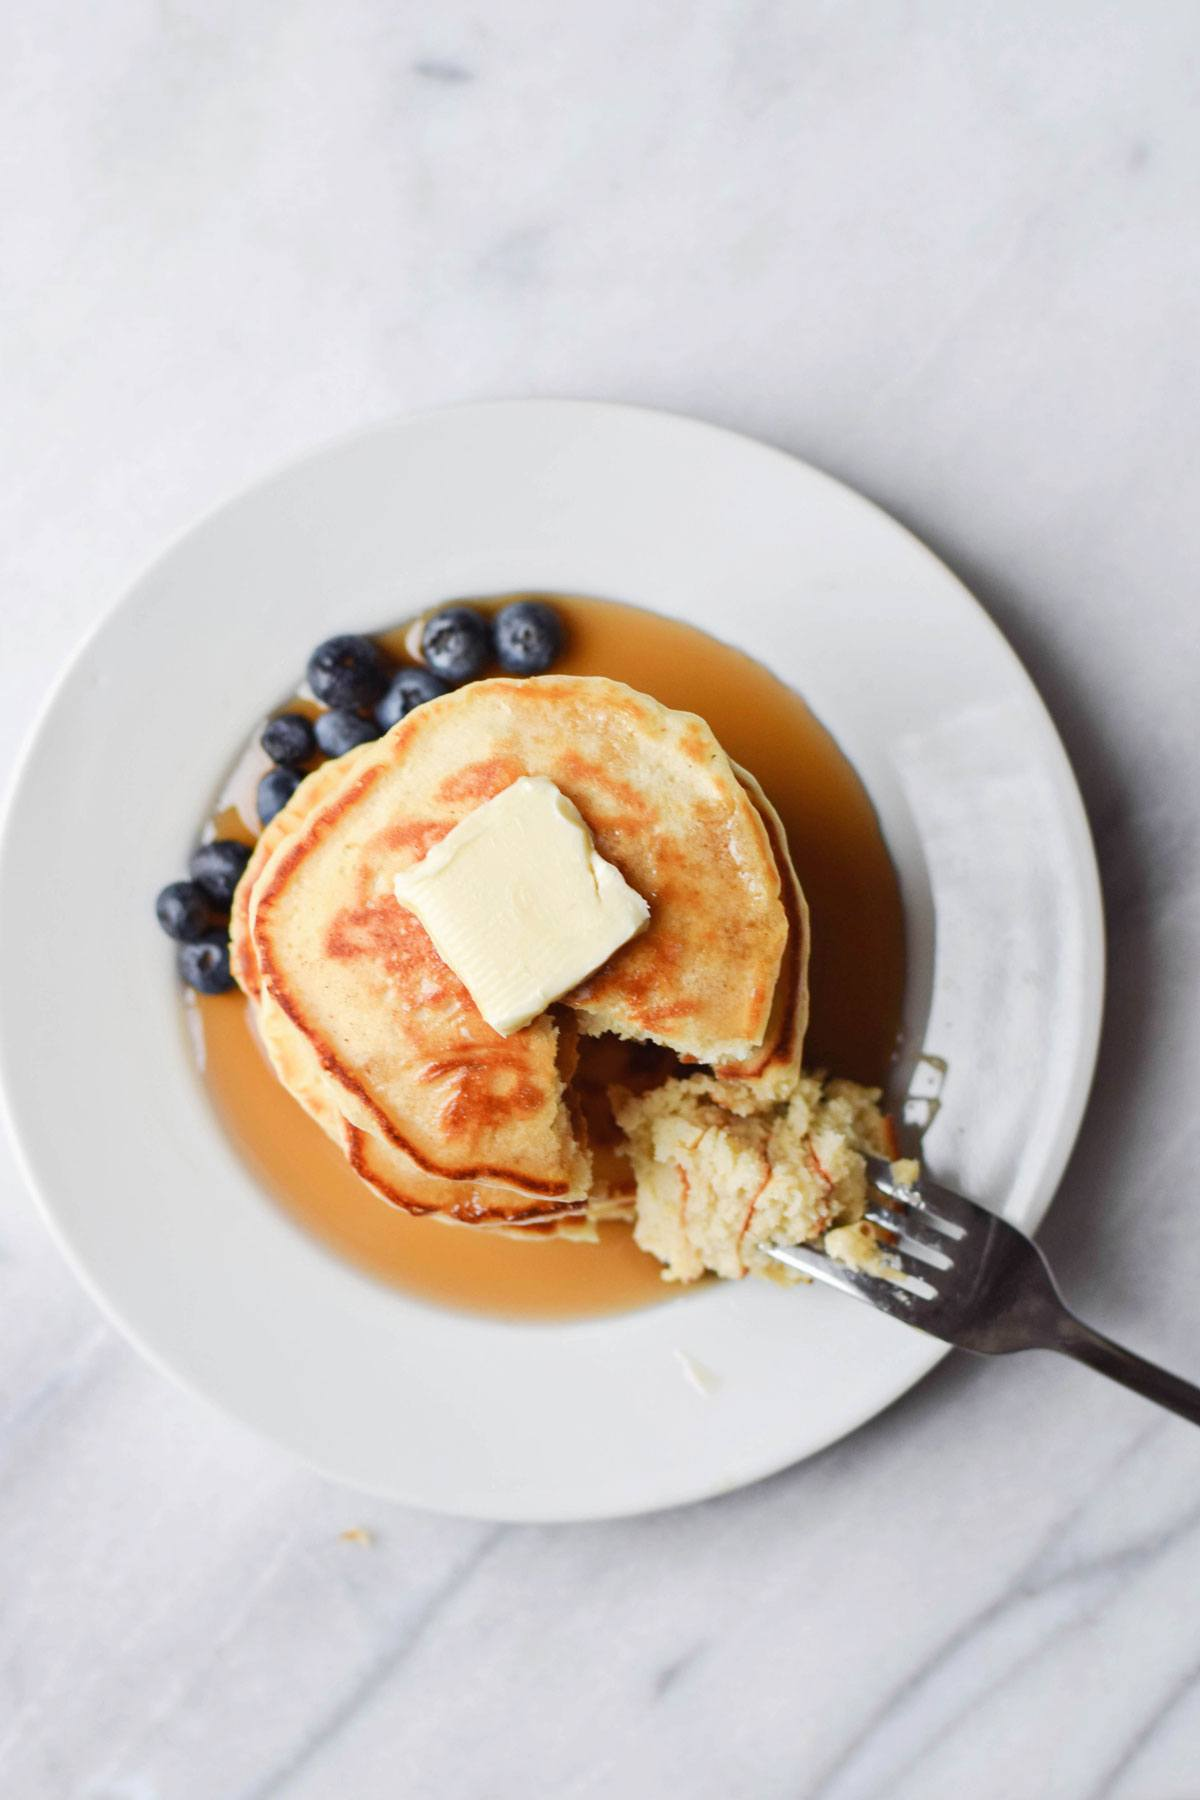 Old Fashioned Pancakes with Syrup, Butter, and Blueberries